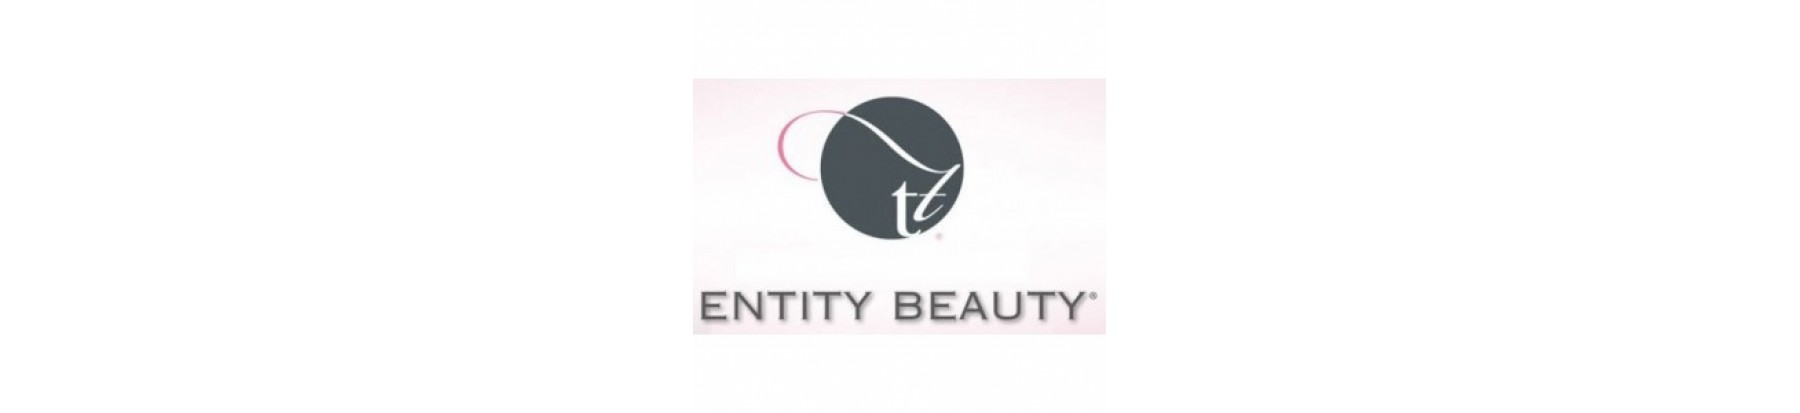 Entity Beauty